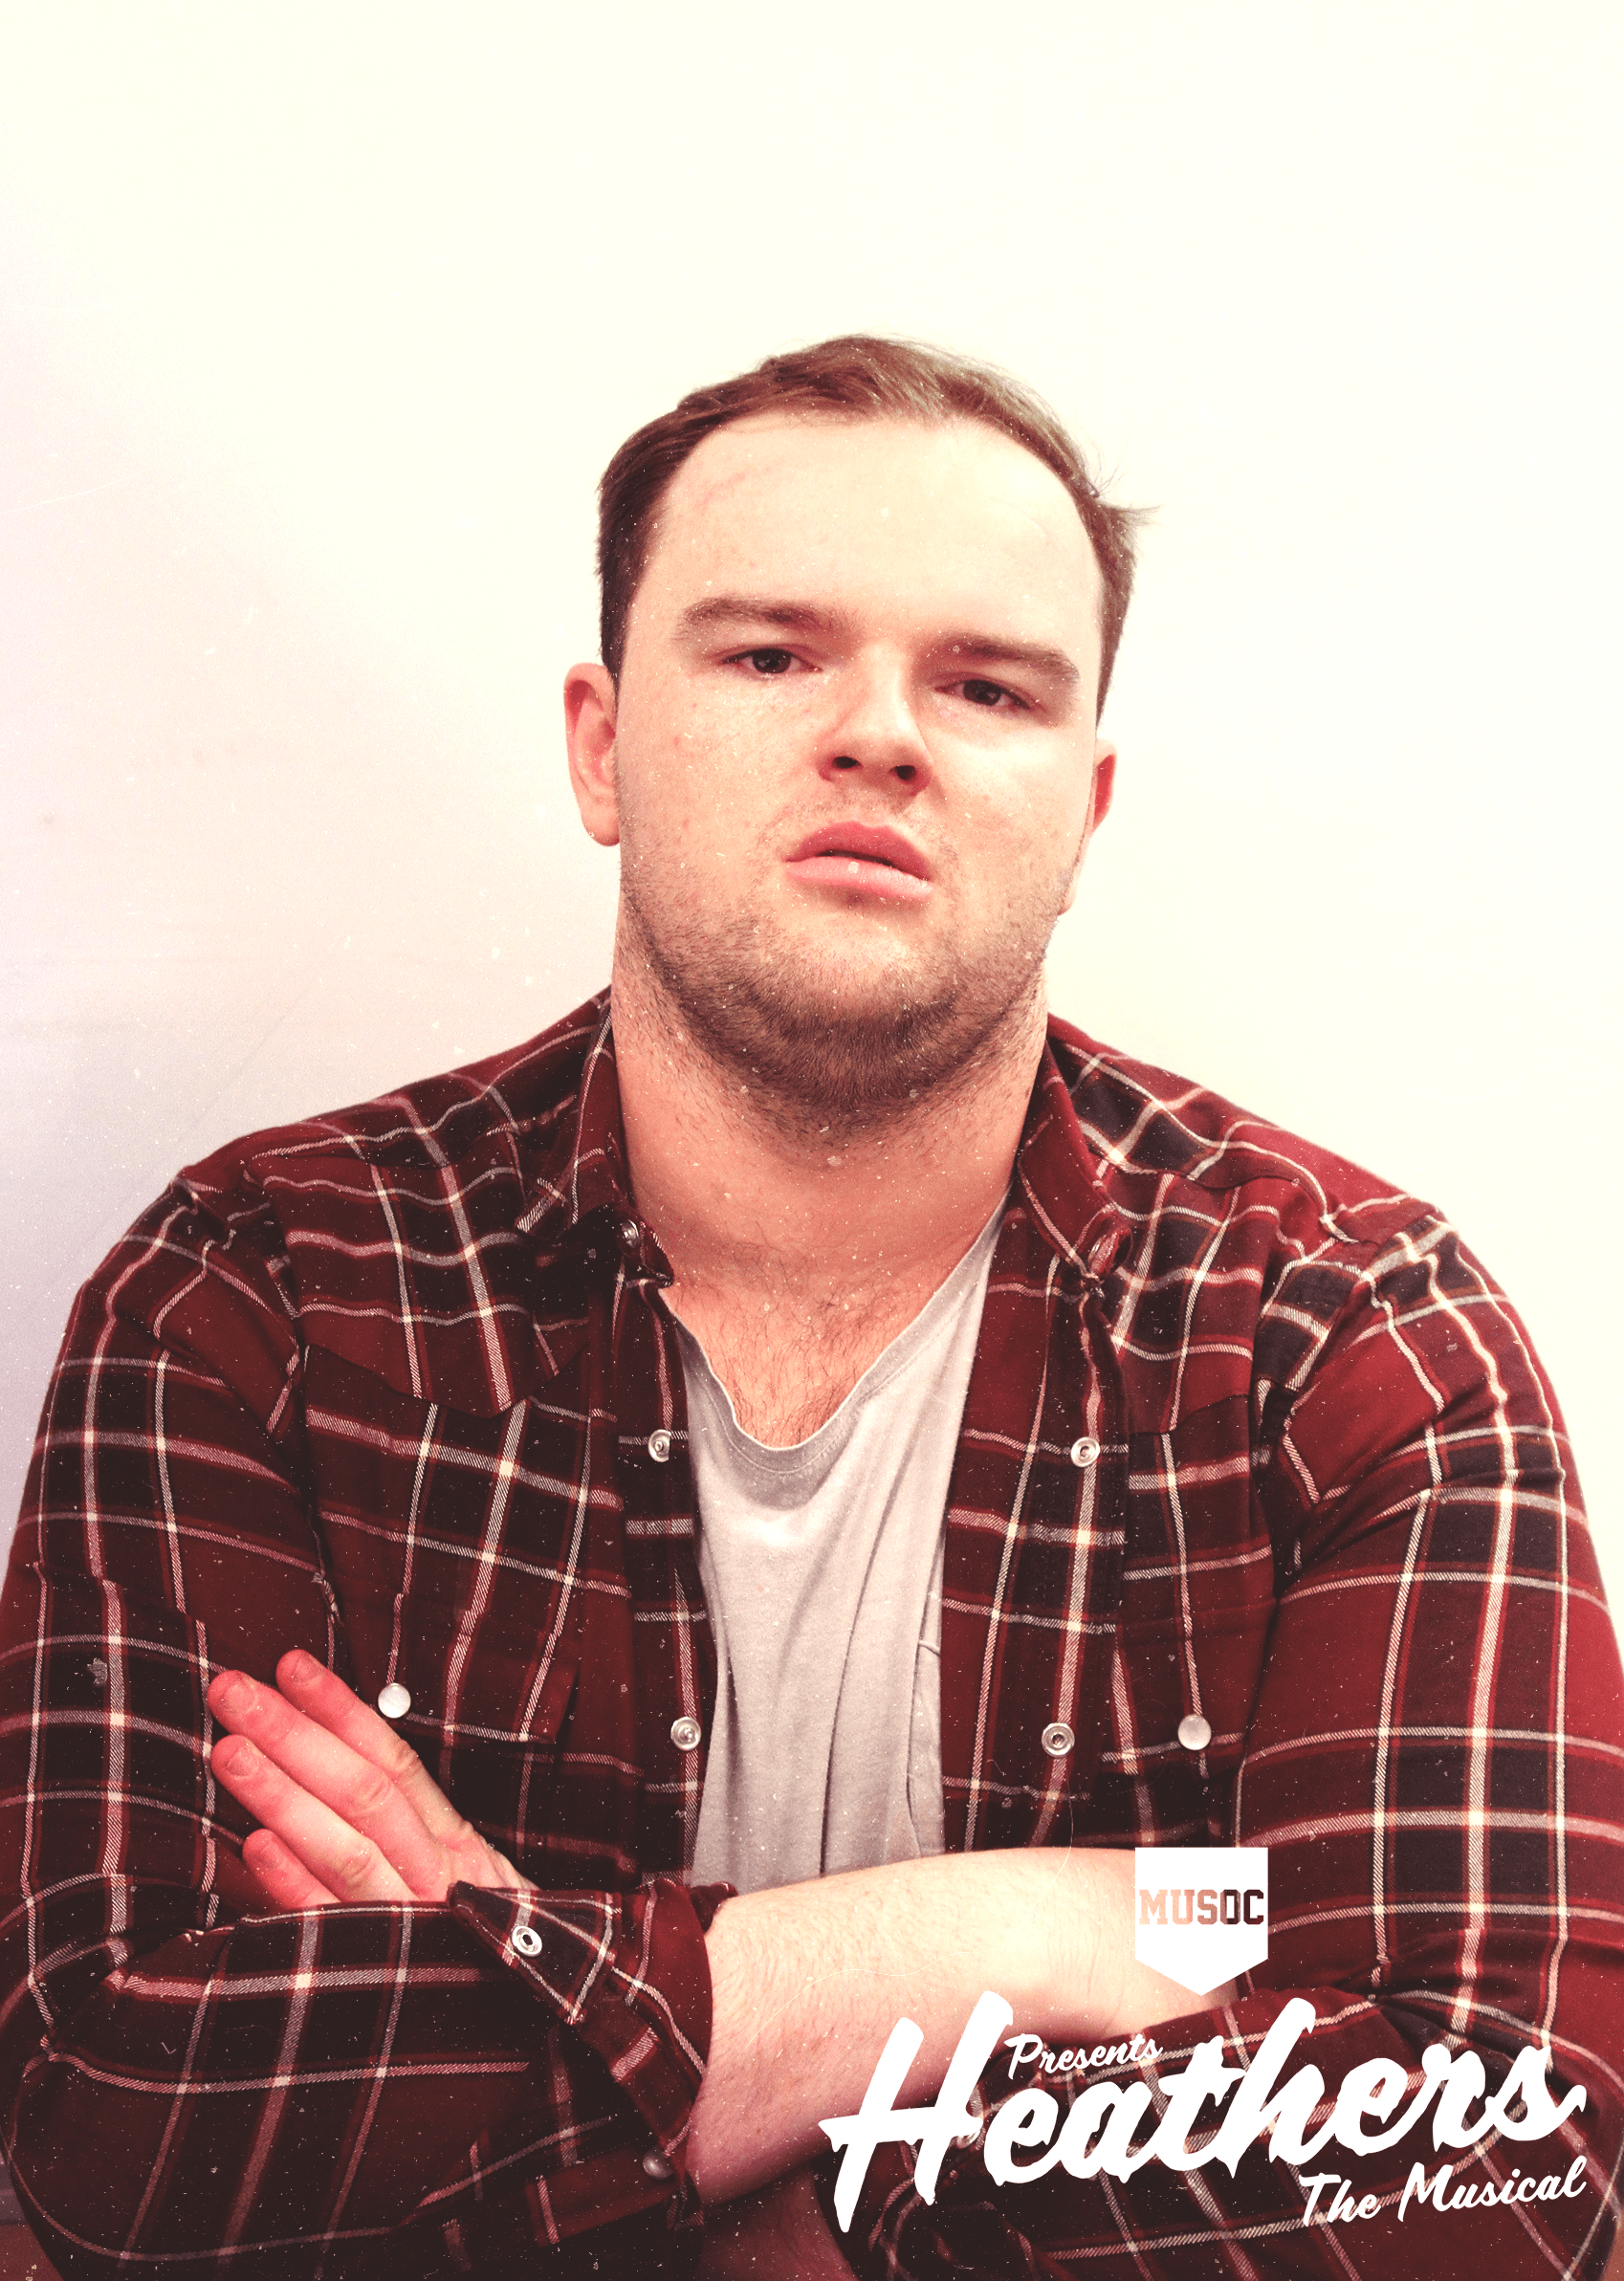 MATT MCMENAMIN - RAM'S DAD  Heathers is Matt McMenamin's second show with MUSOC and has had a blast performing with stellar cast. Matt is playing Ram's Dad: a conservative, red-blooded American man who certainly has nothing to hide. No sir, nothing at all.